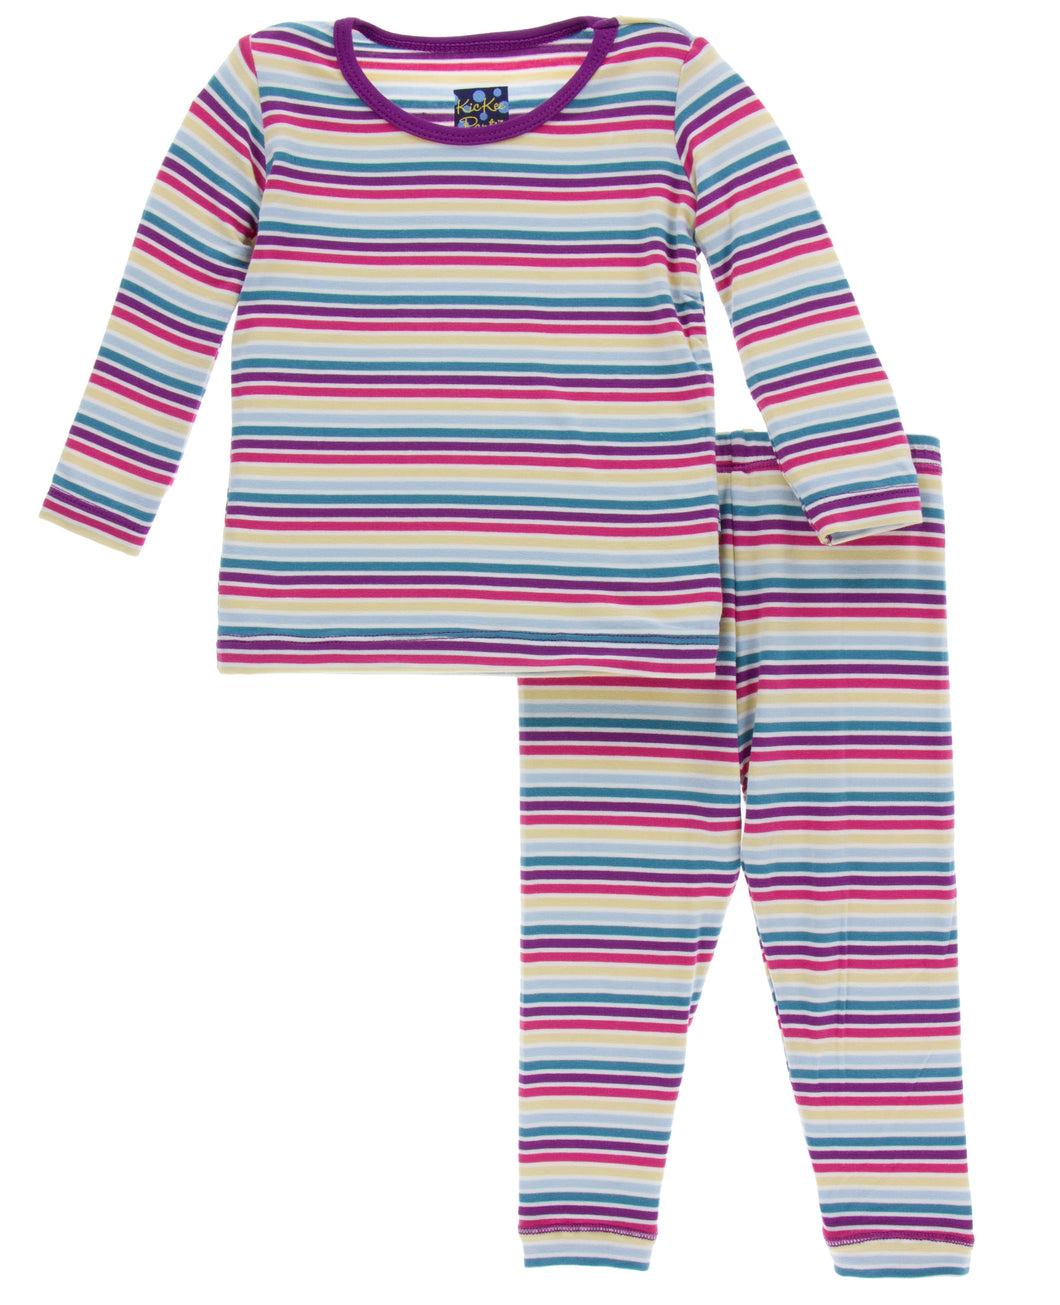 KicKee Pants Print Long Sleeve Pajama Set - Girl Perth Stripe